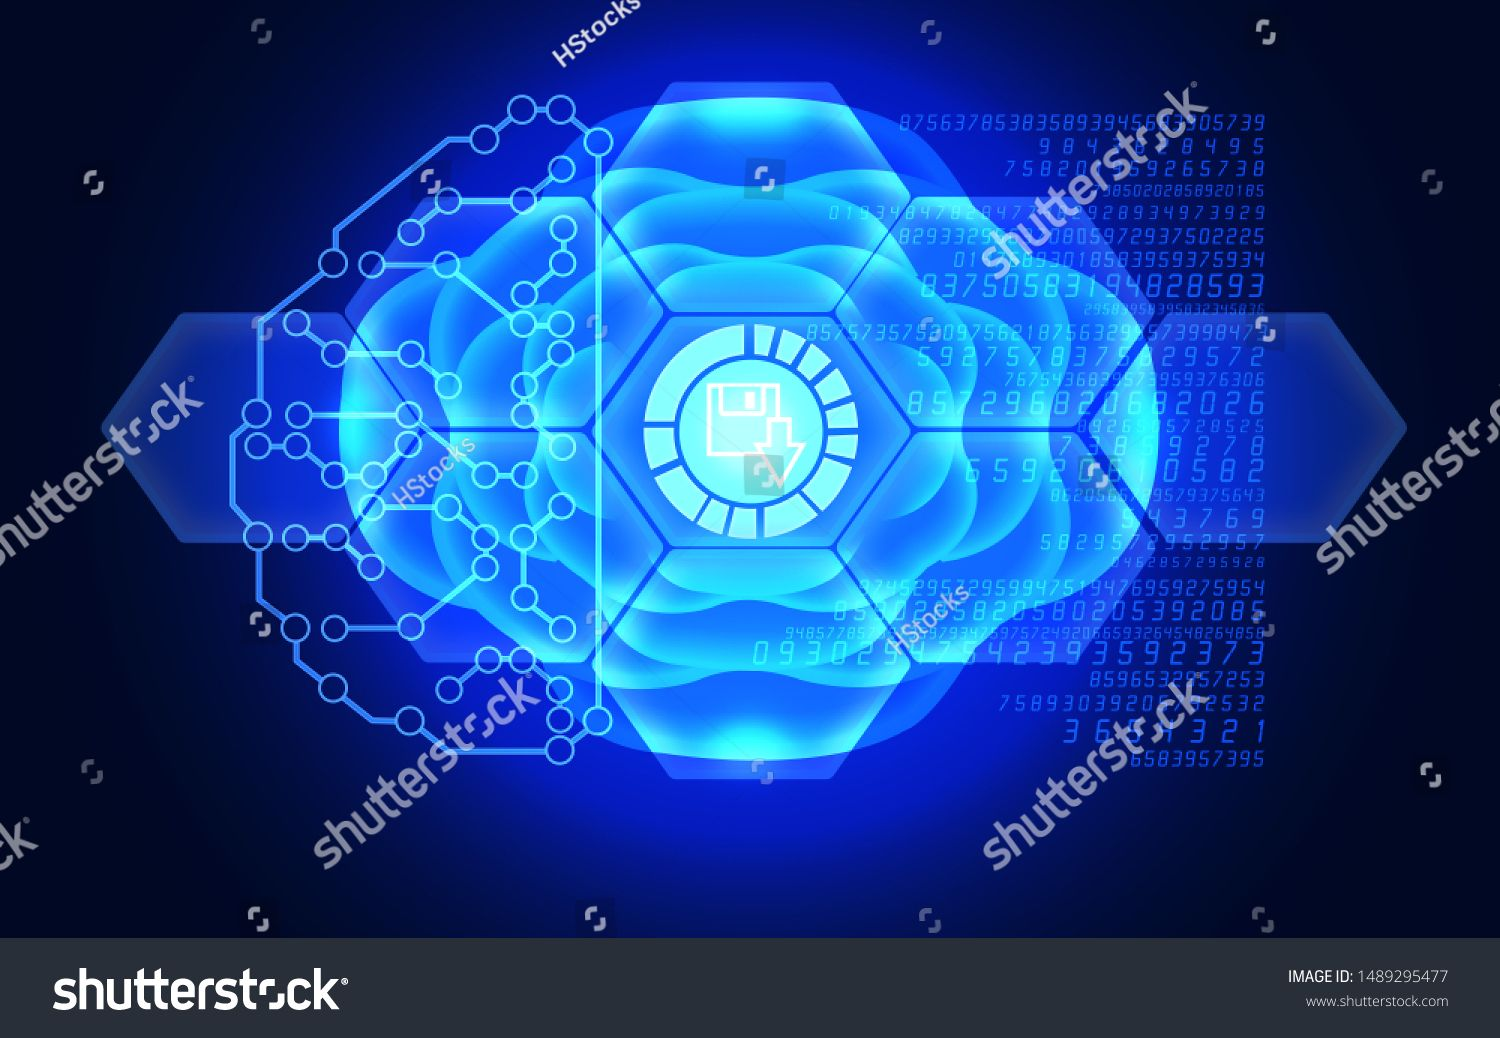 Download symbol is reflecting over 3D futuristic electronic circuit in a brain model Business finance technology and money concepts over futuristic electronic circuit 3D...